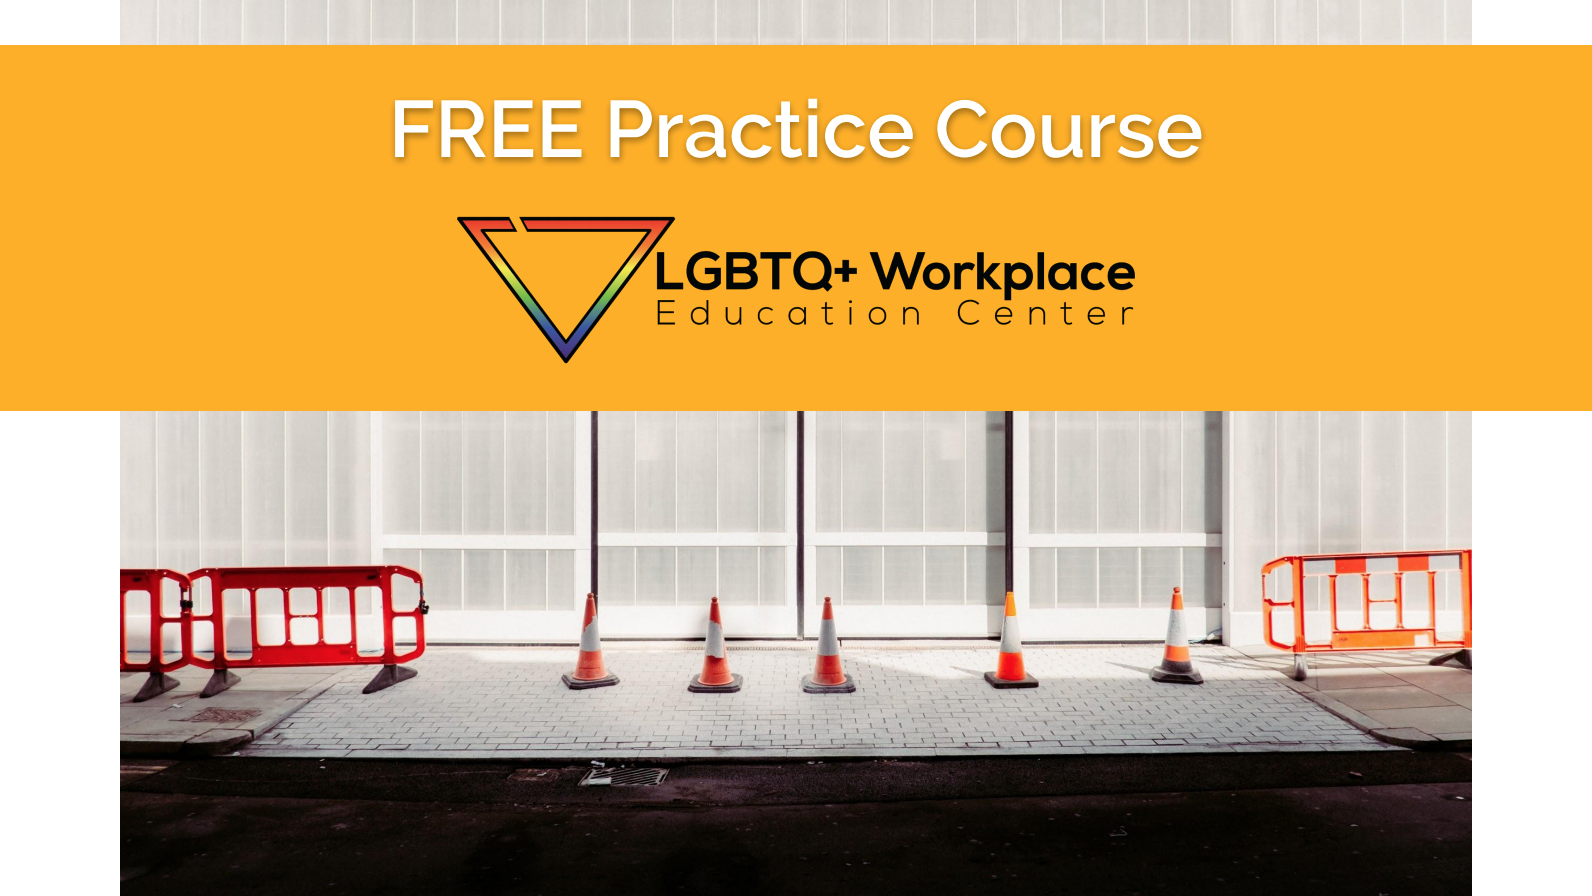 FREE Practice Course